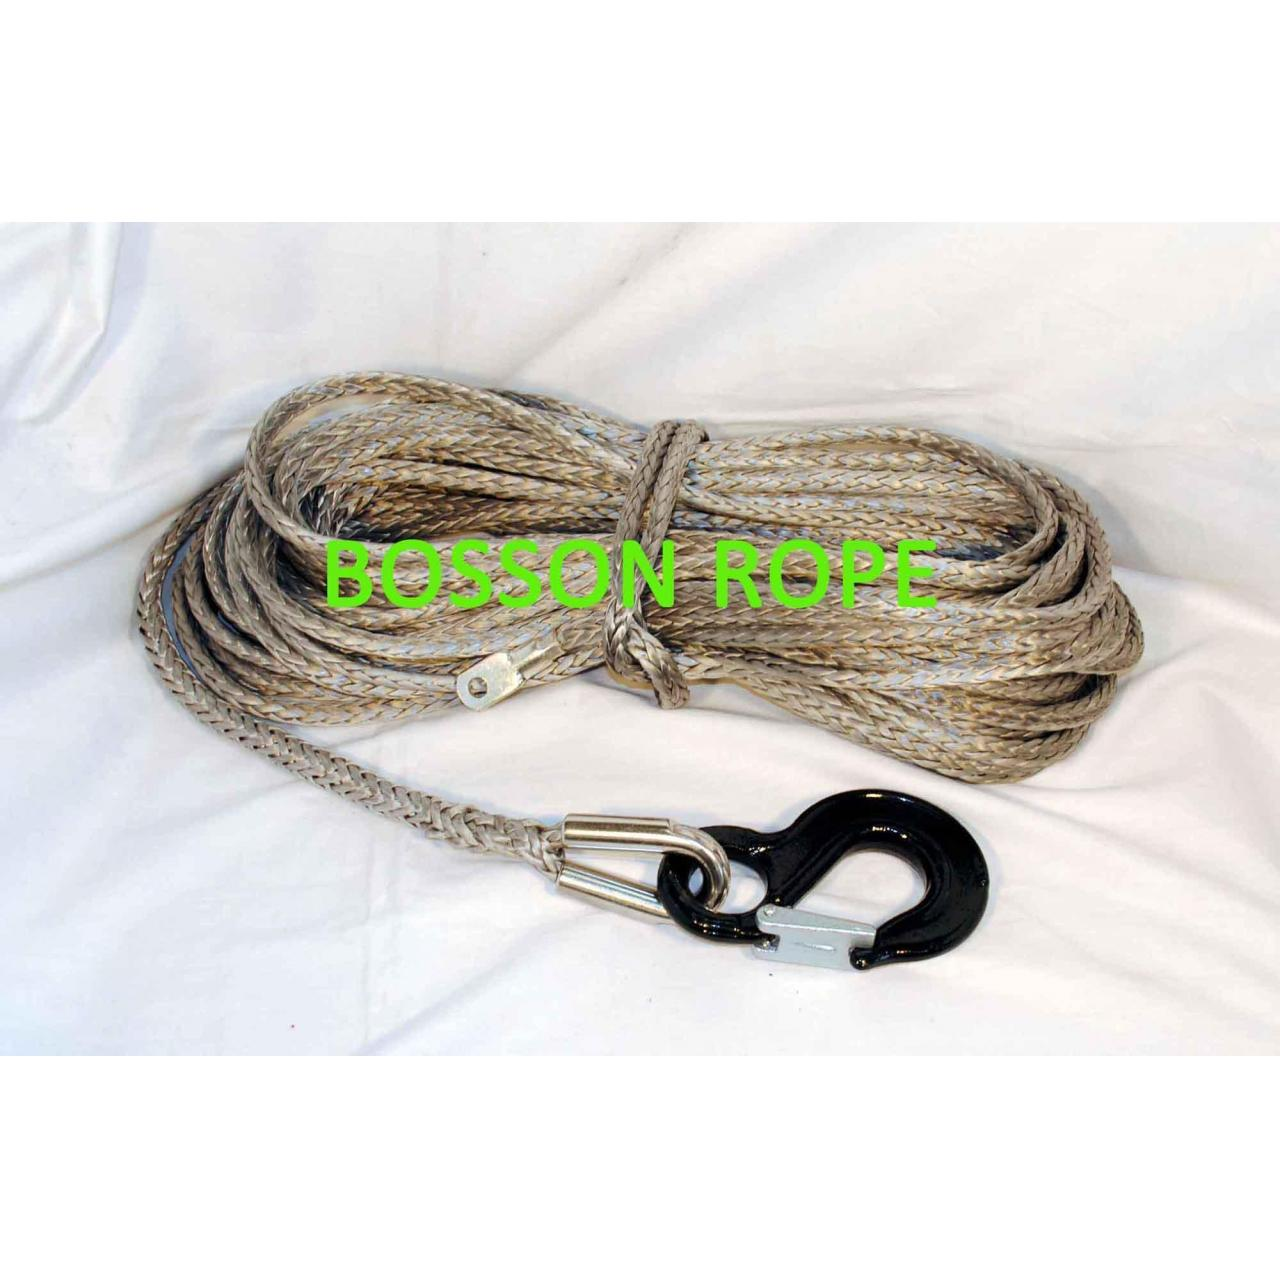 Best WINCH ACCESSORIES Dyneema rope wholesale